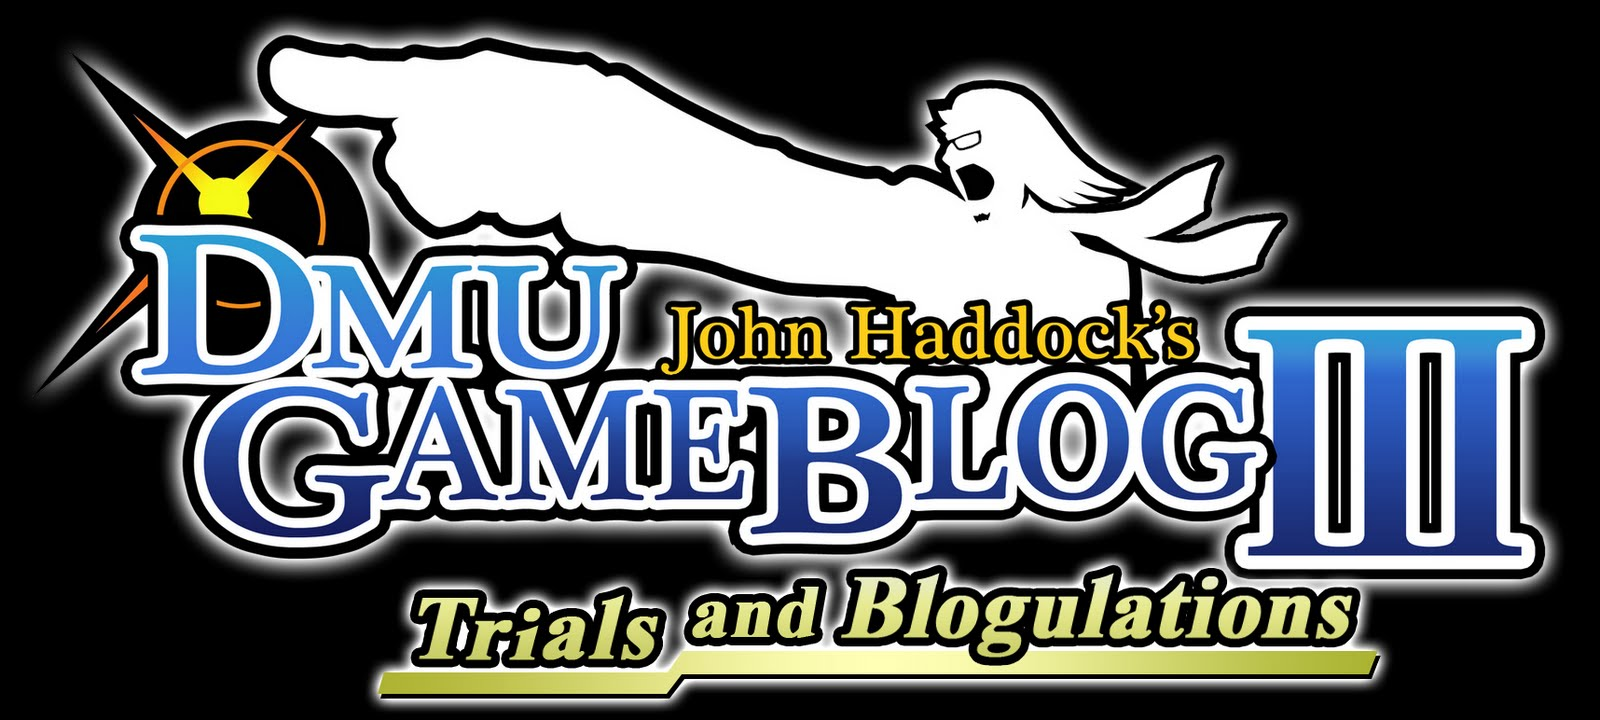 John Haddock's DMU Game Blog : Year 3